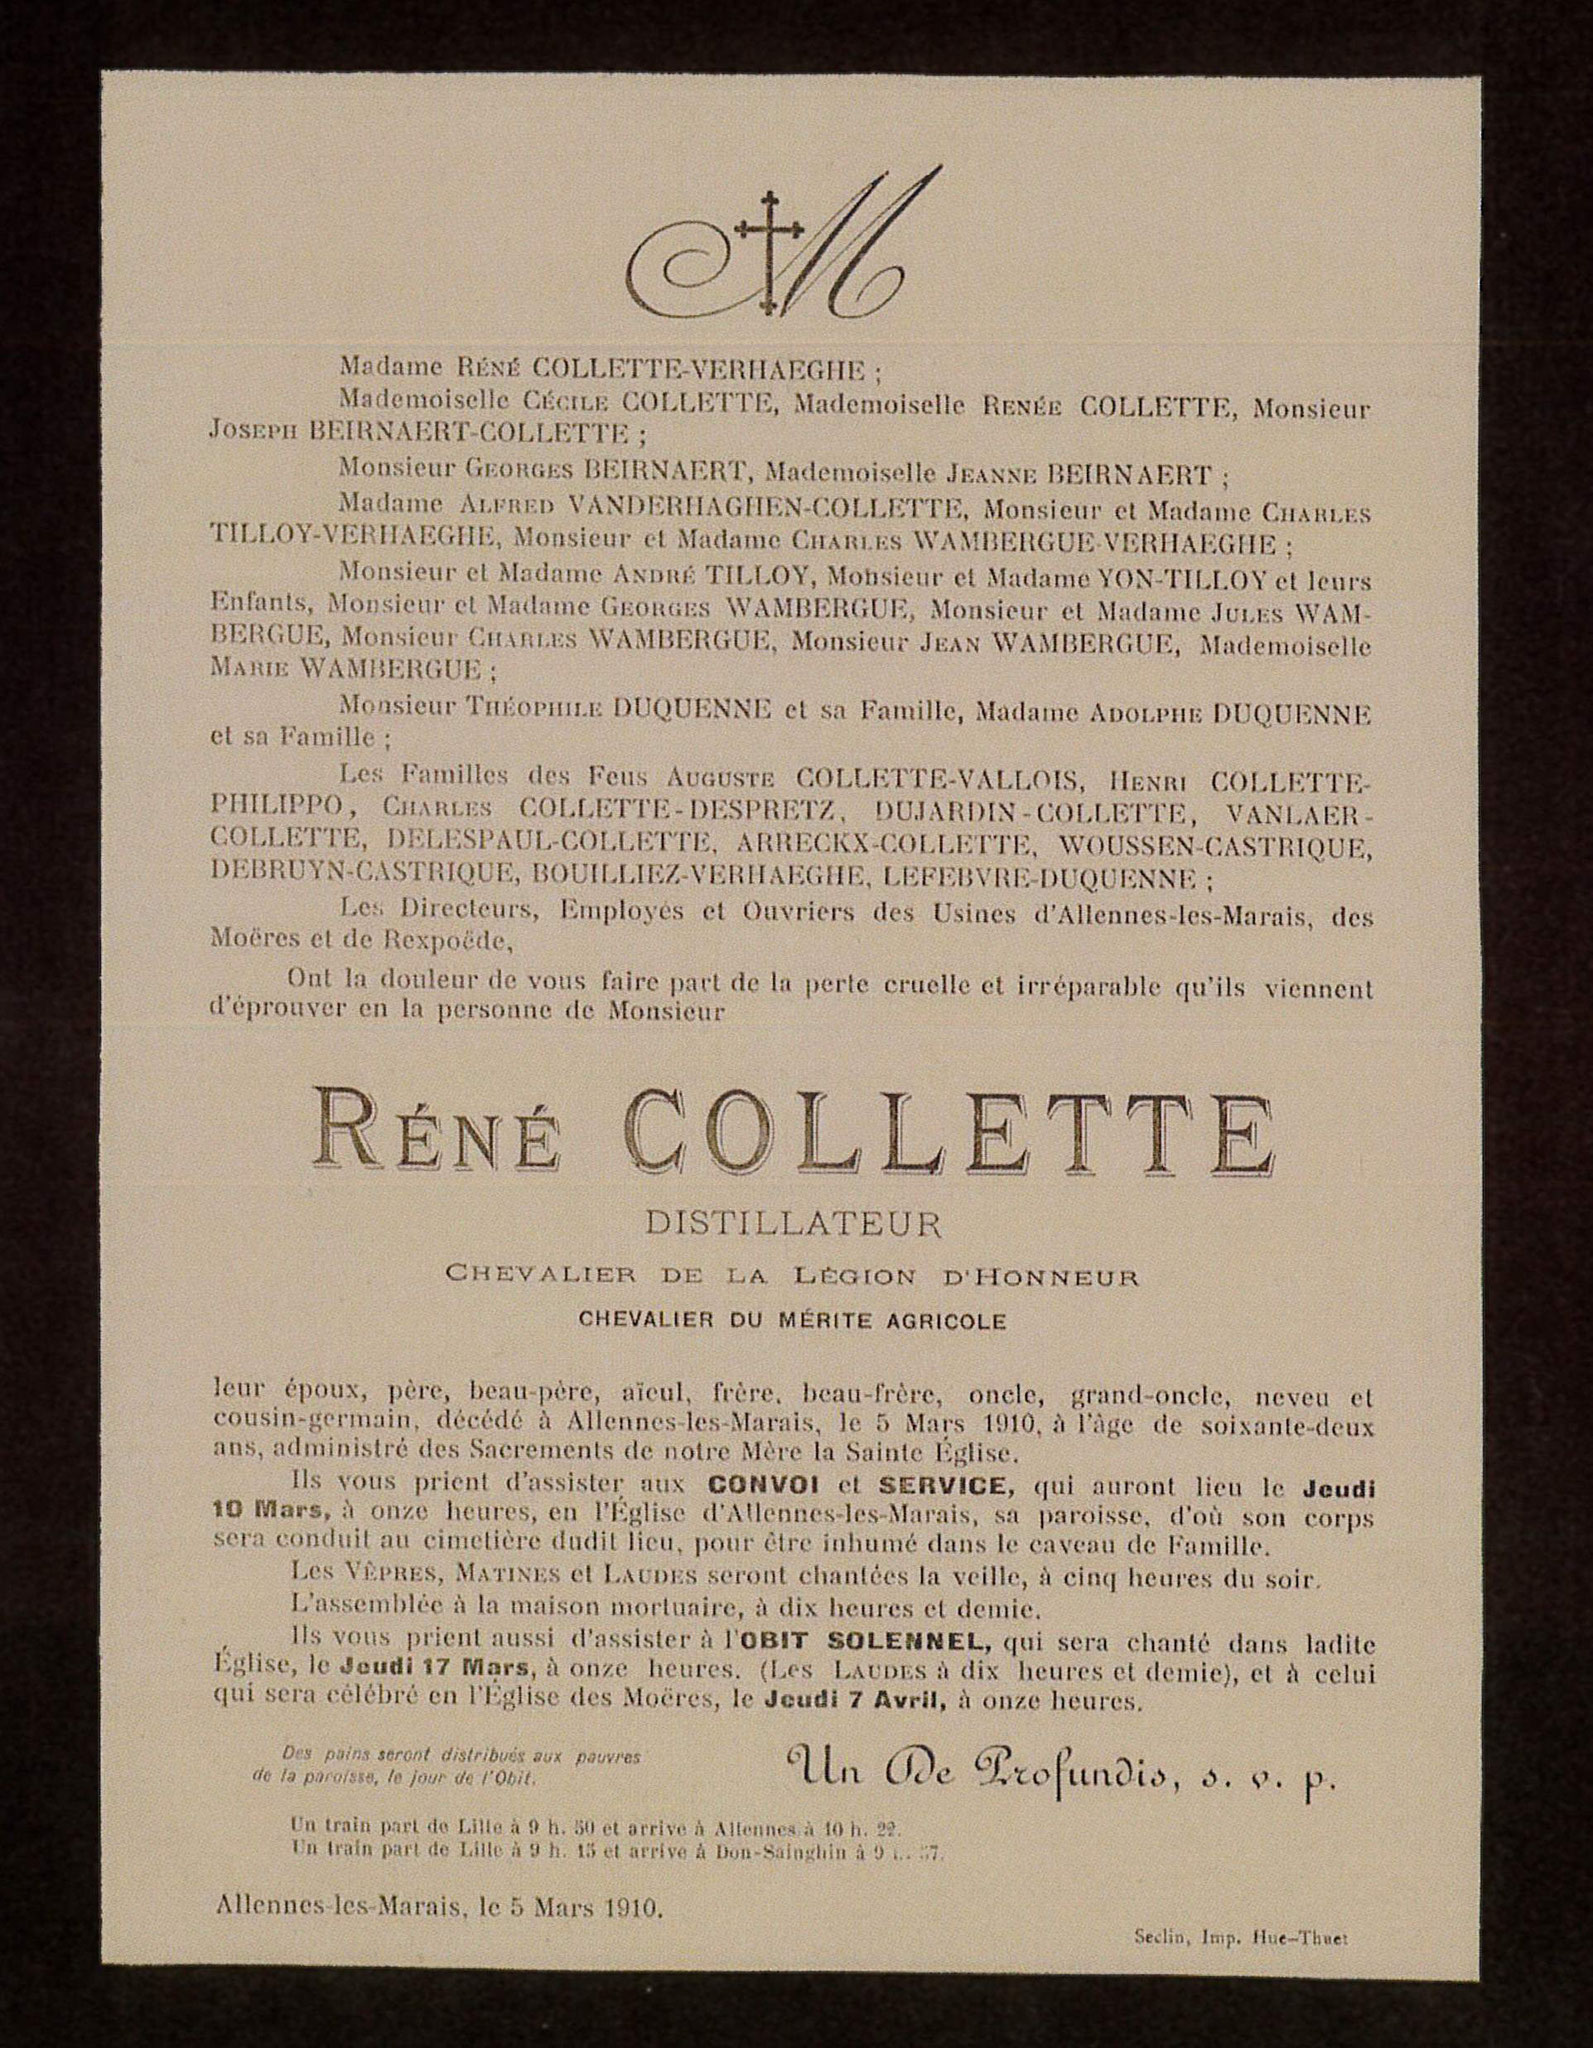 Mortuaire de René Collette